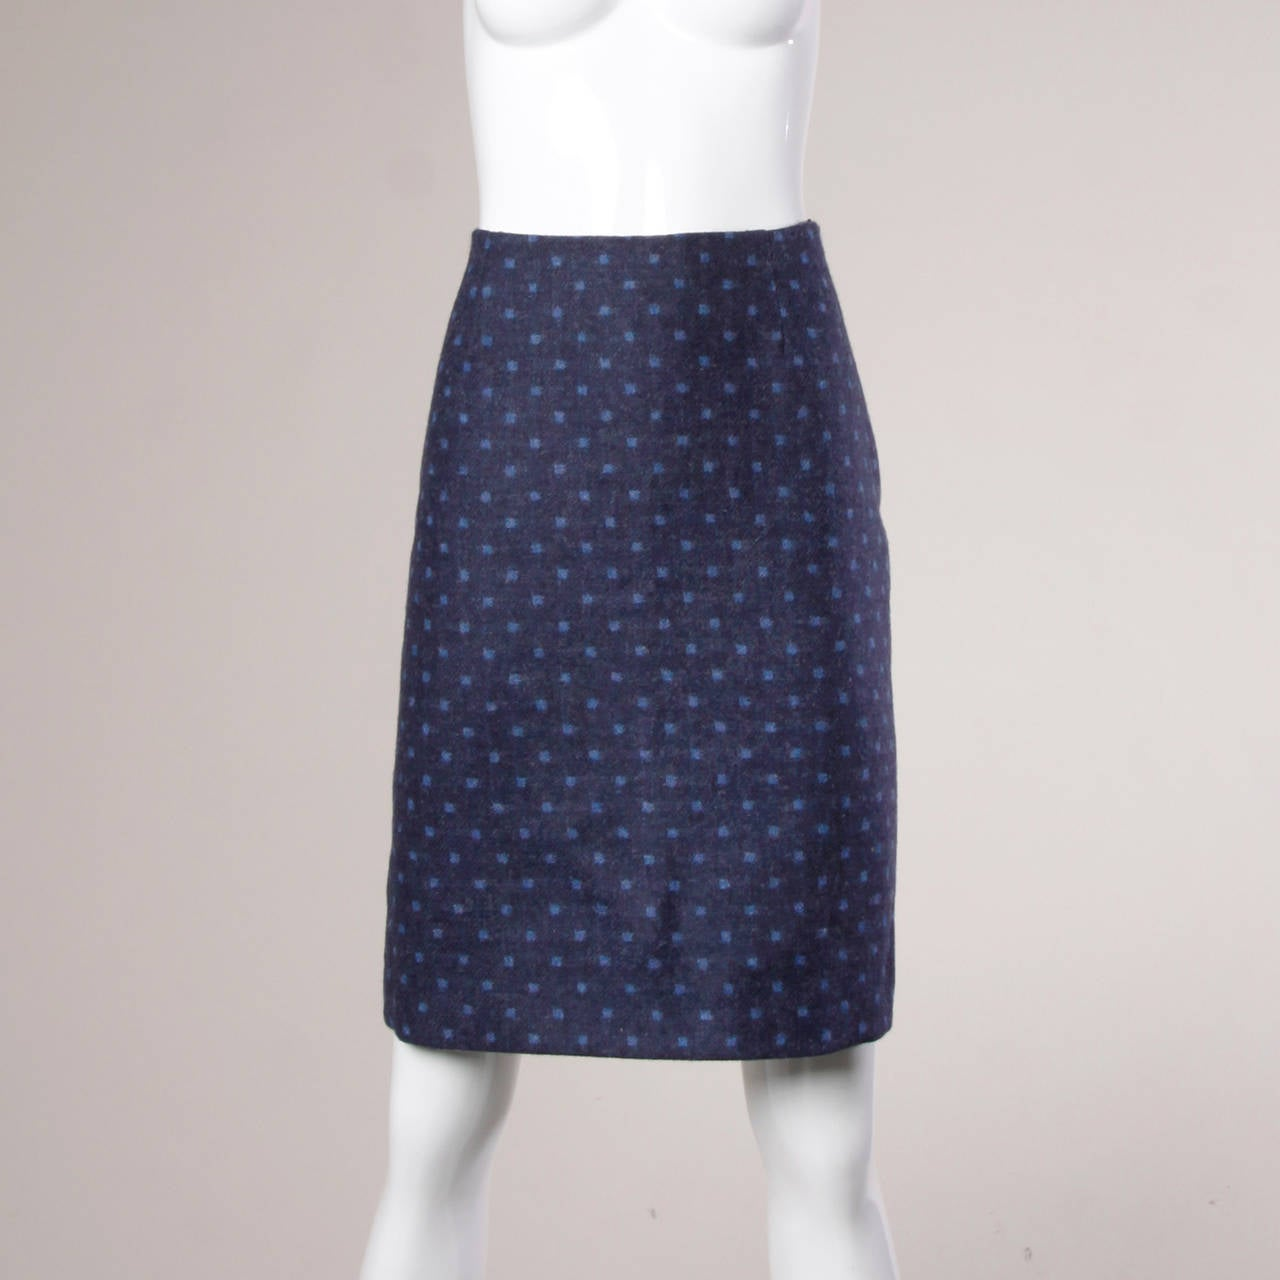 Moschino Vintage 90s Polka Dot Patchwork Skirt + Jacket Suit Ensemble For Sale 2